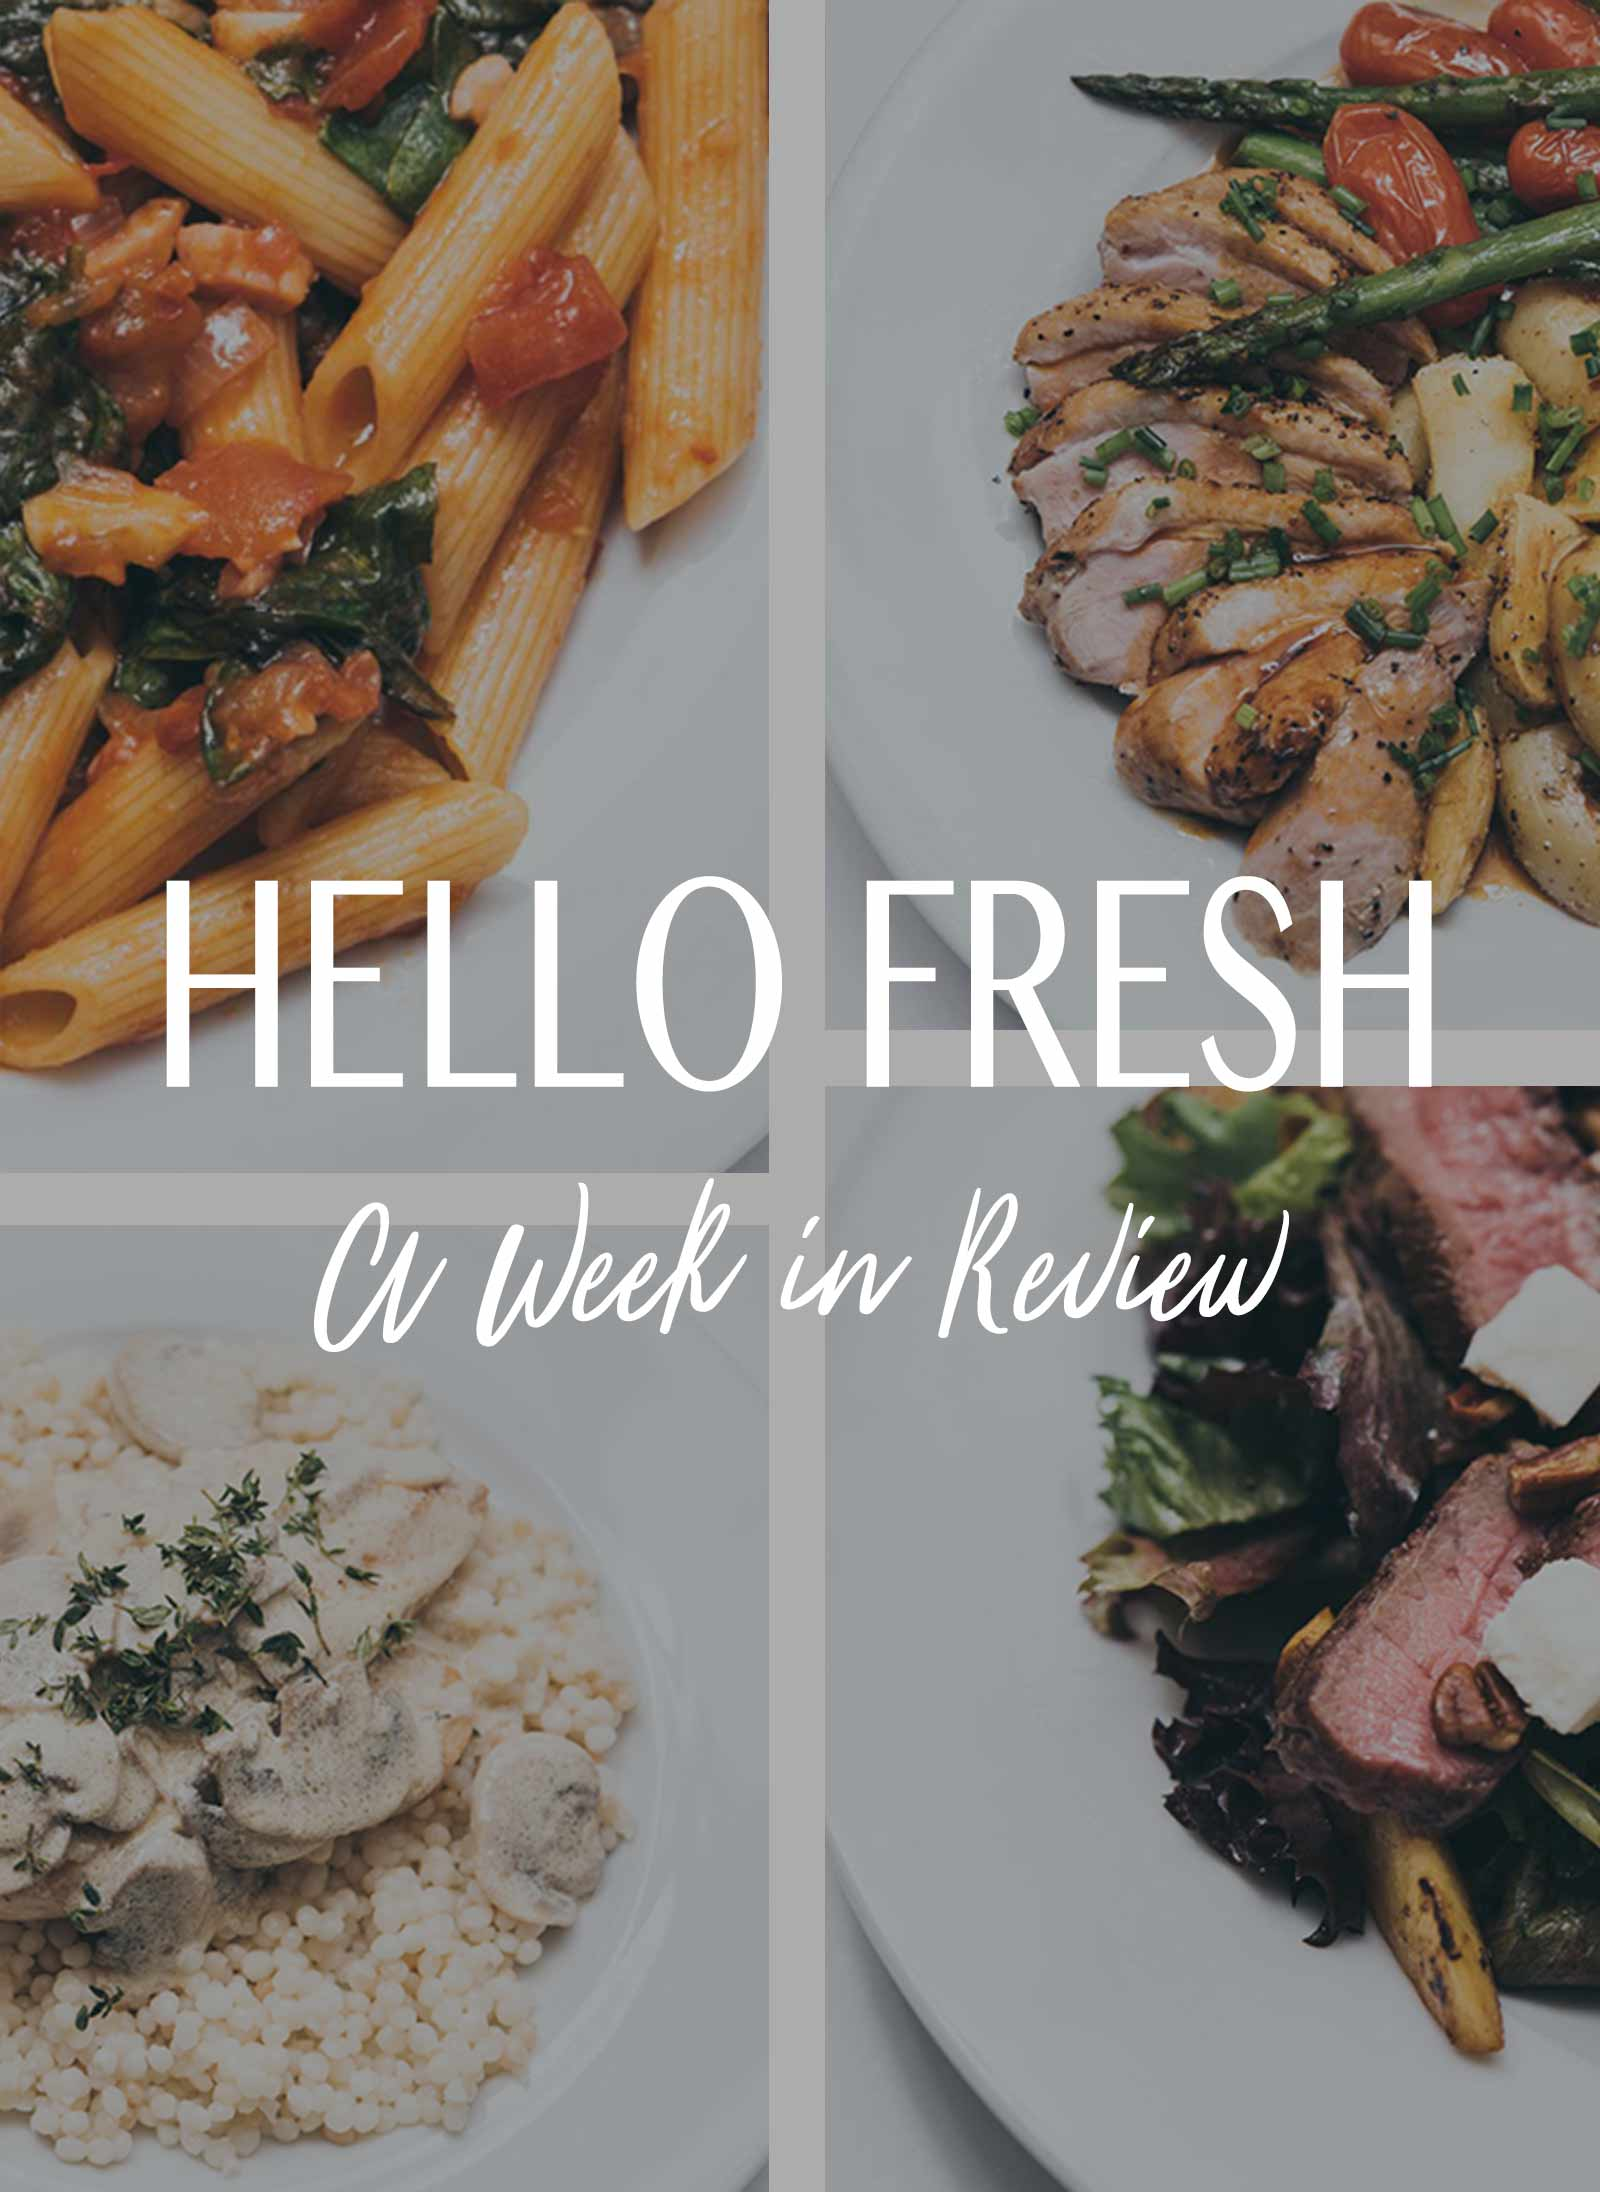 Fresh Food Delivery With Recipes